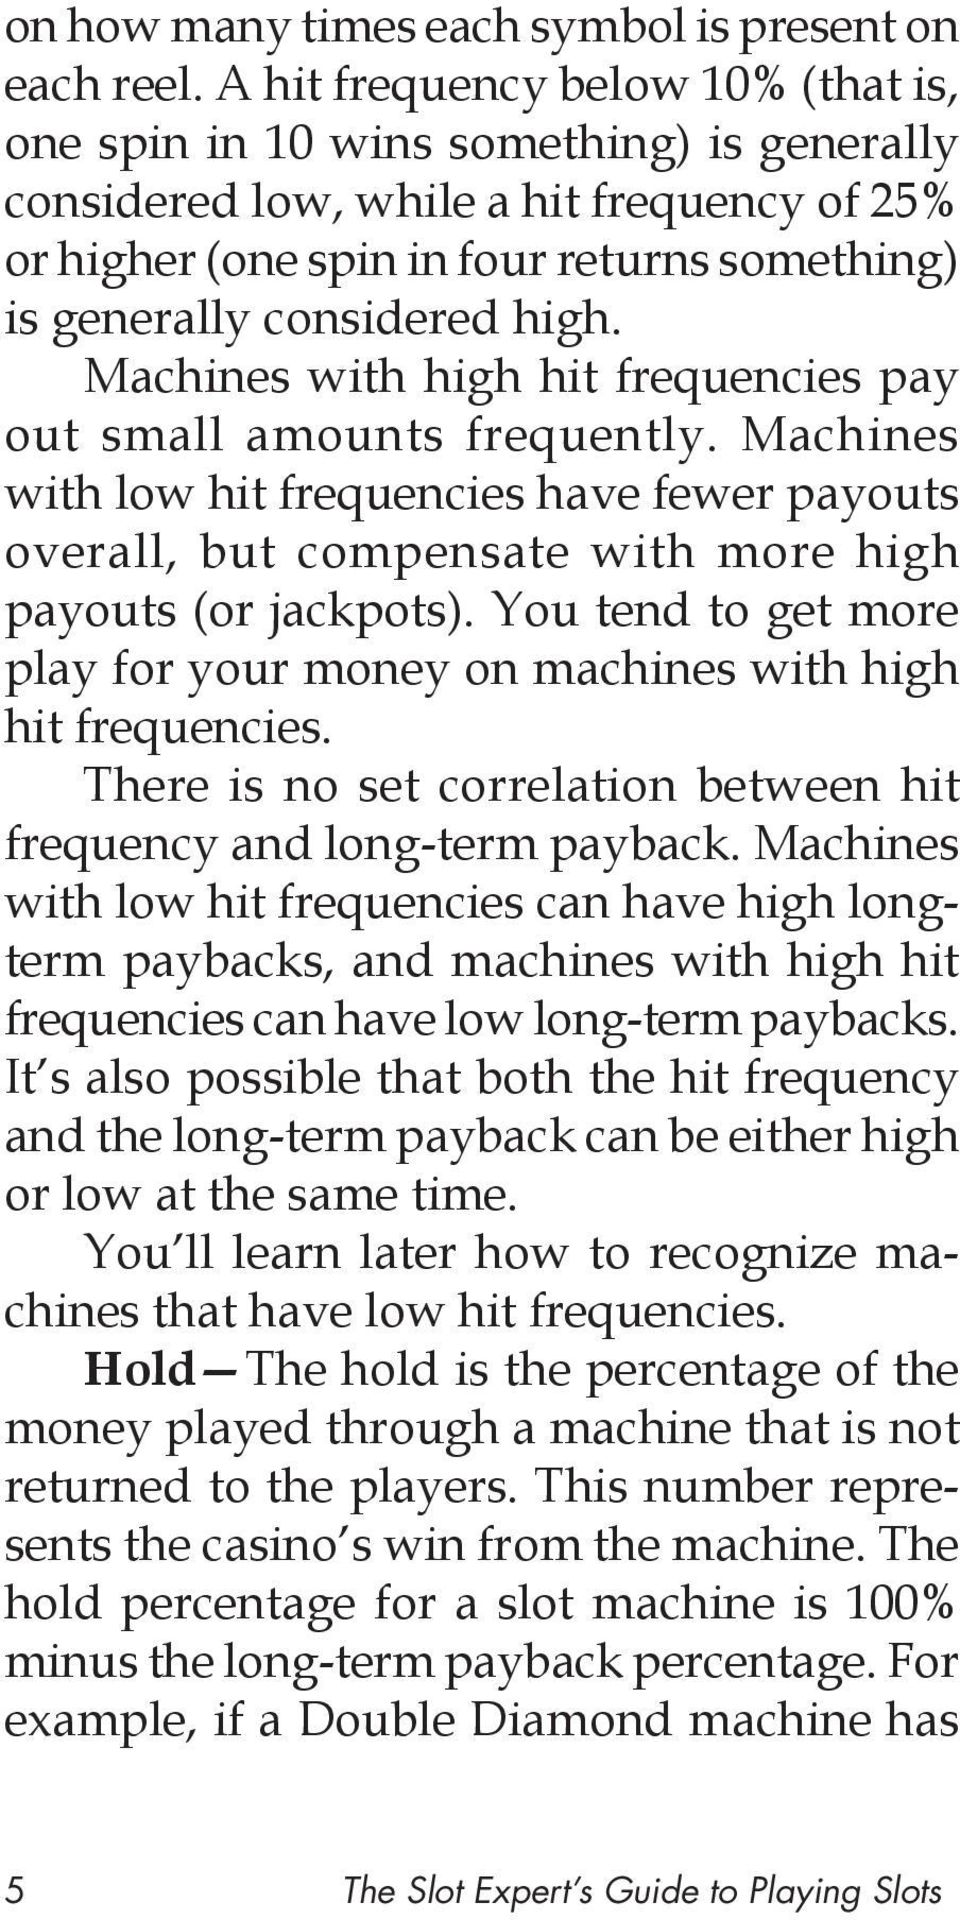 high. Machines with high hit frequencies pay out small amounts frequently. Machines with low hit frequencies have fewer payouts overall, but compensate with more high payouts (or jackpots).